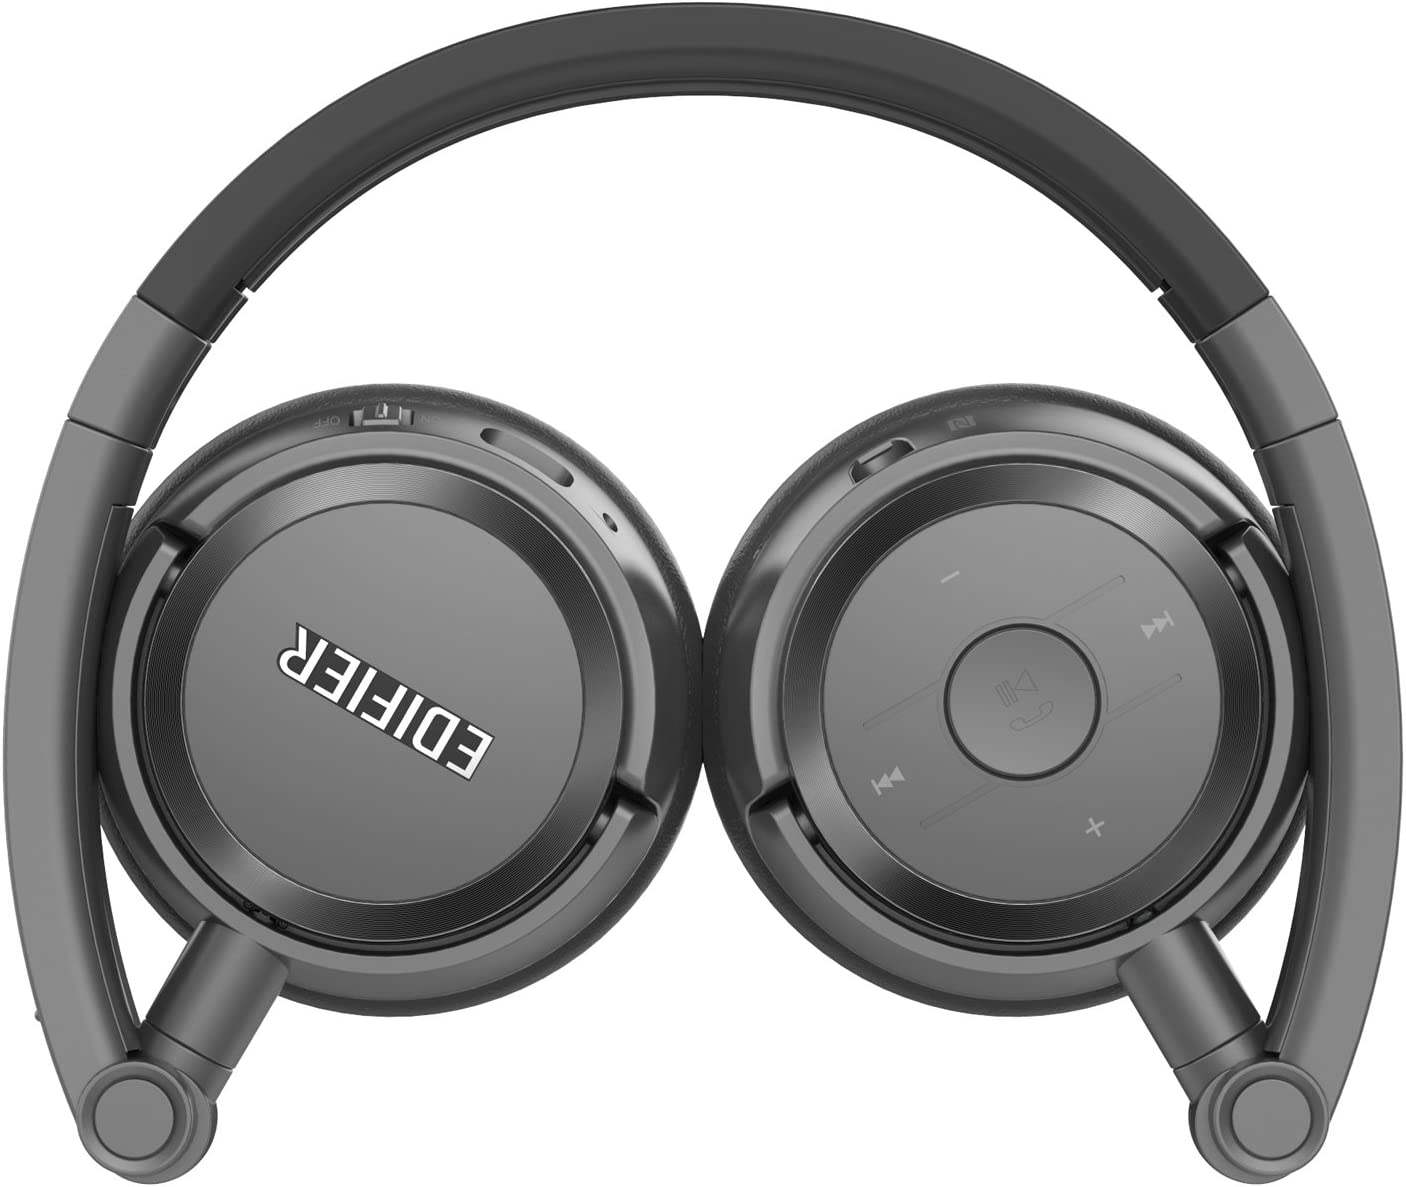 Edifier W675BT Wireless Headphones Over Ear Headset - Bluetooth v4.1 On-Ear Earphones, Foldable with NFC Quick Connect for TV/PC/Phone - Grey Grey